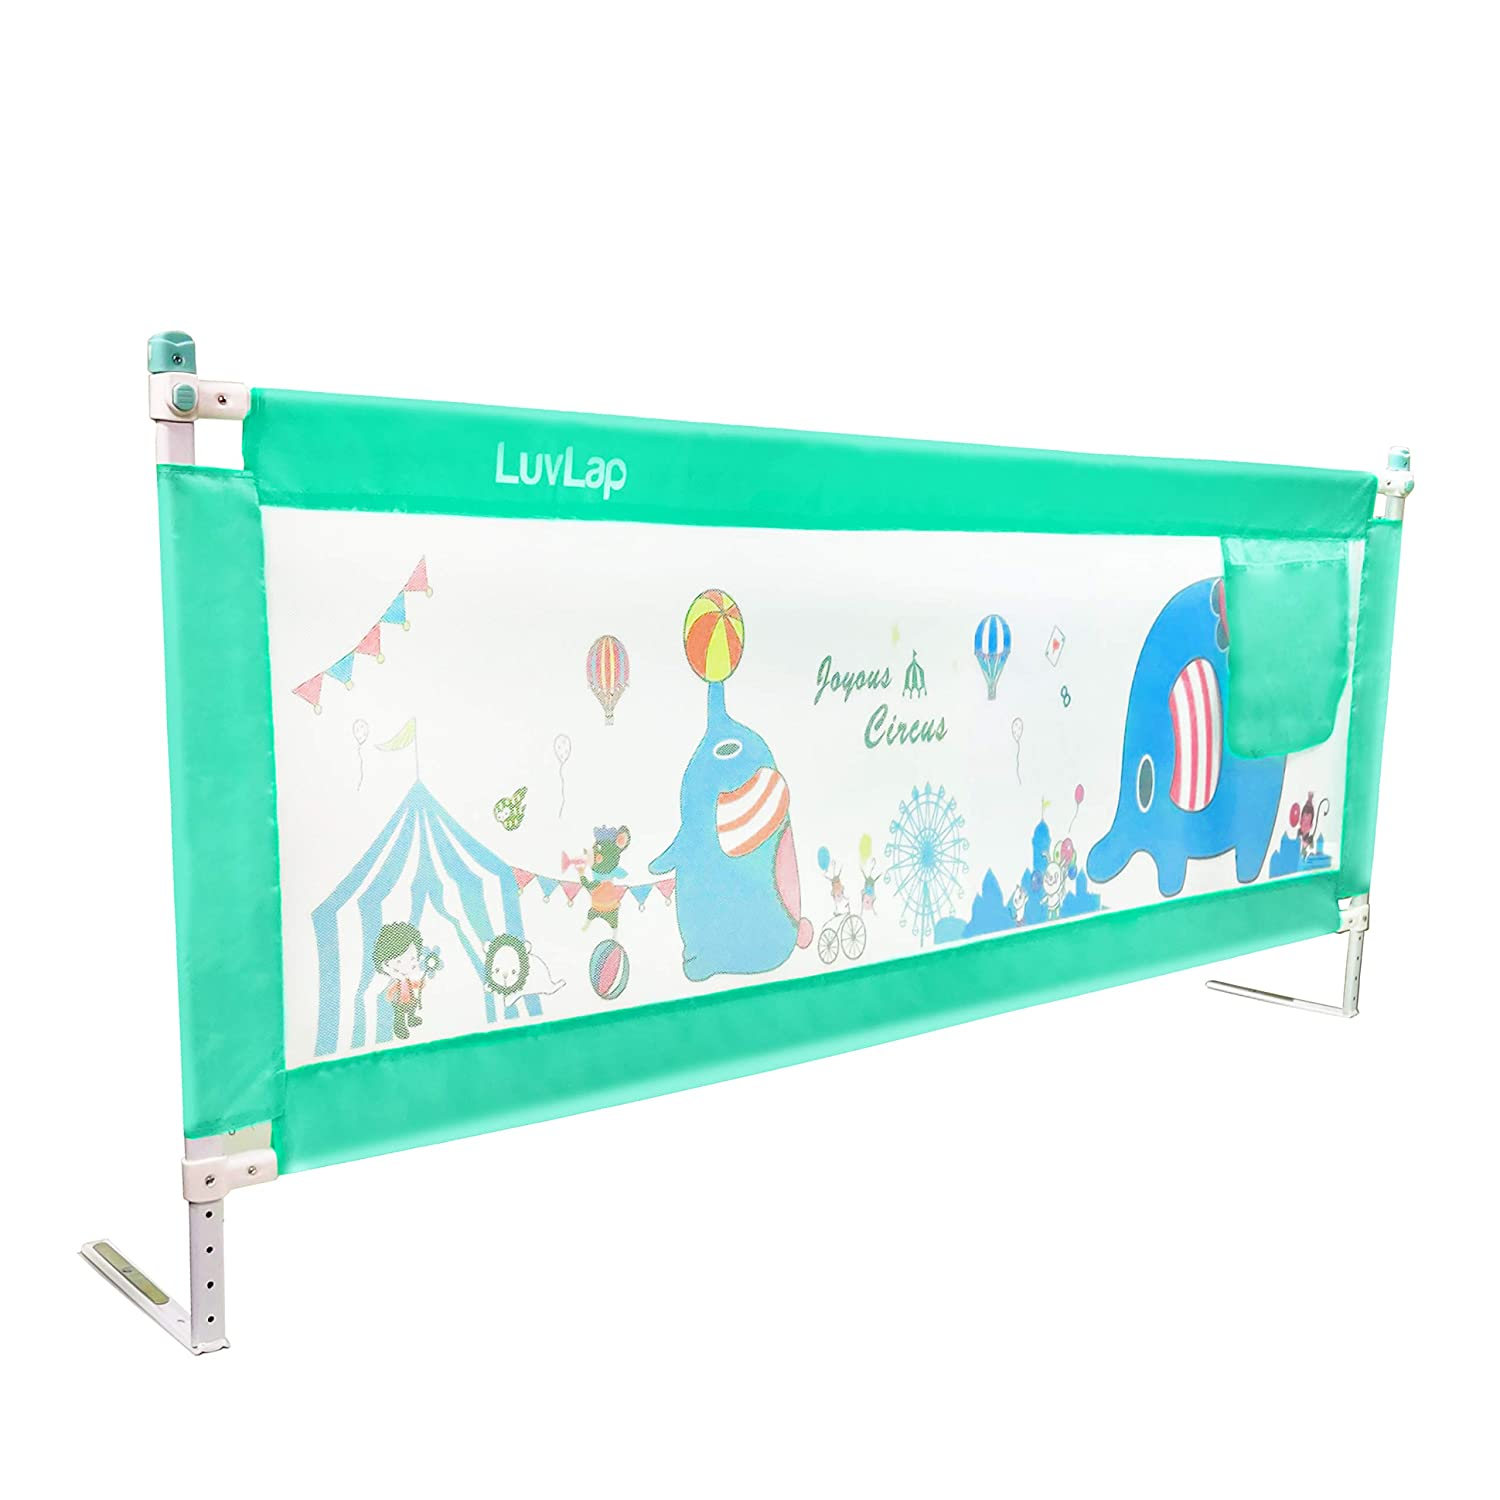 LuvLap Bed Rail Guard for Babies